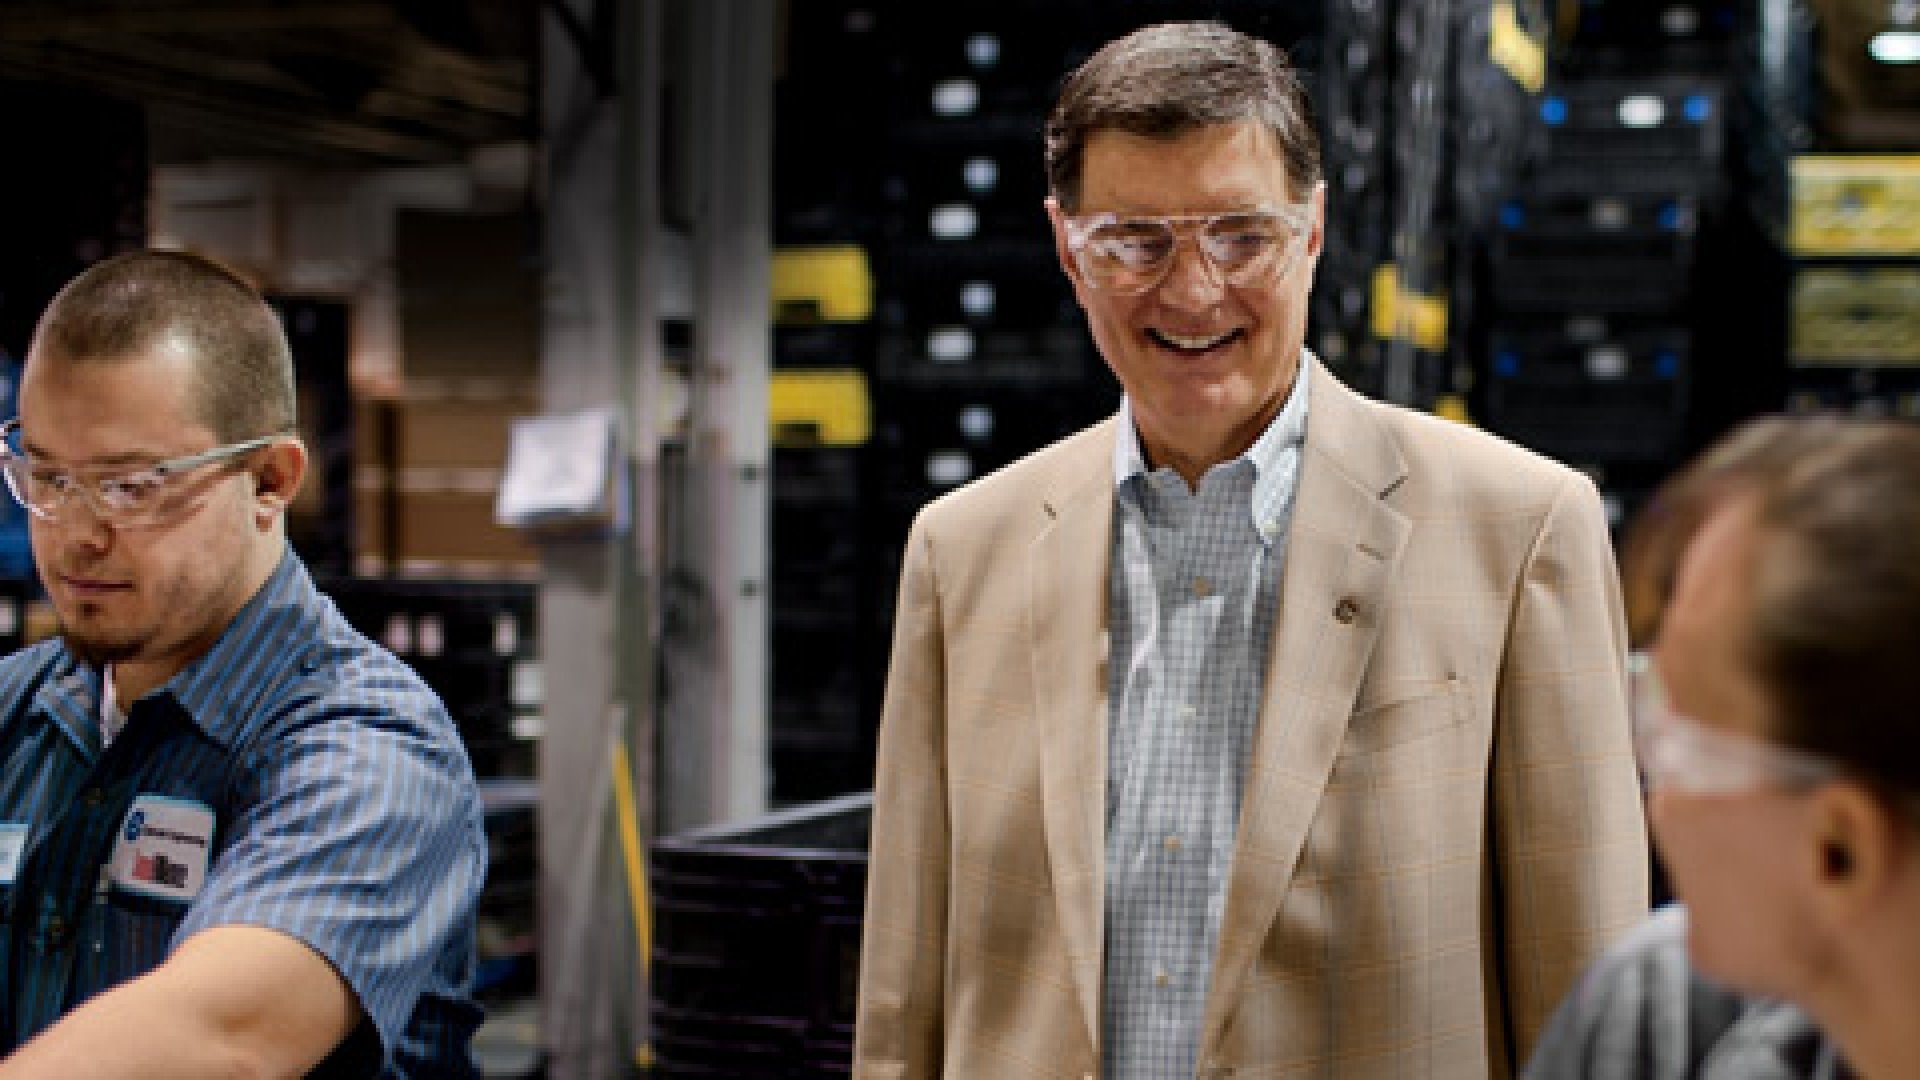 <b>Man on a Mission</b> Fred Keller drops in on the first shift in his automobile-parts plant. His $250 million company has been balancing mission and money for nearly four decades.